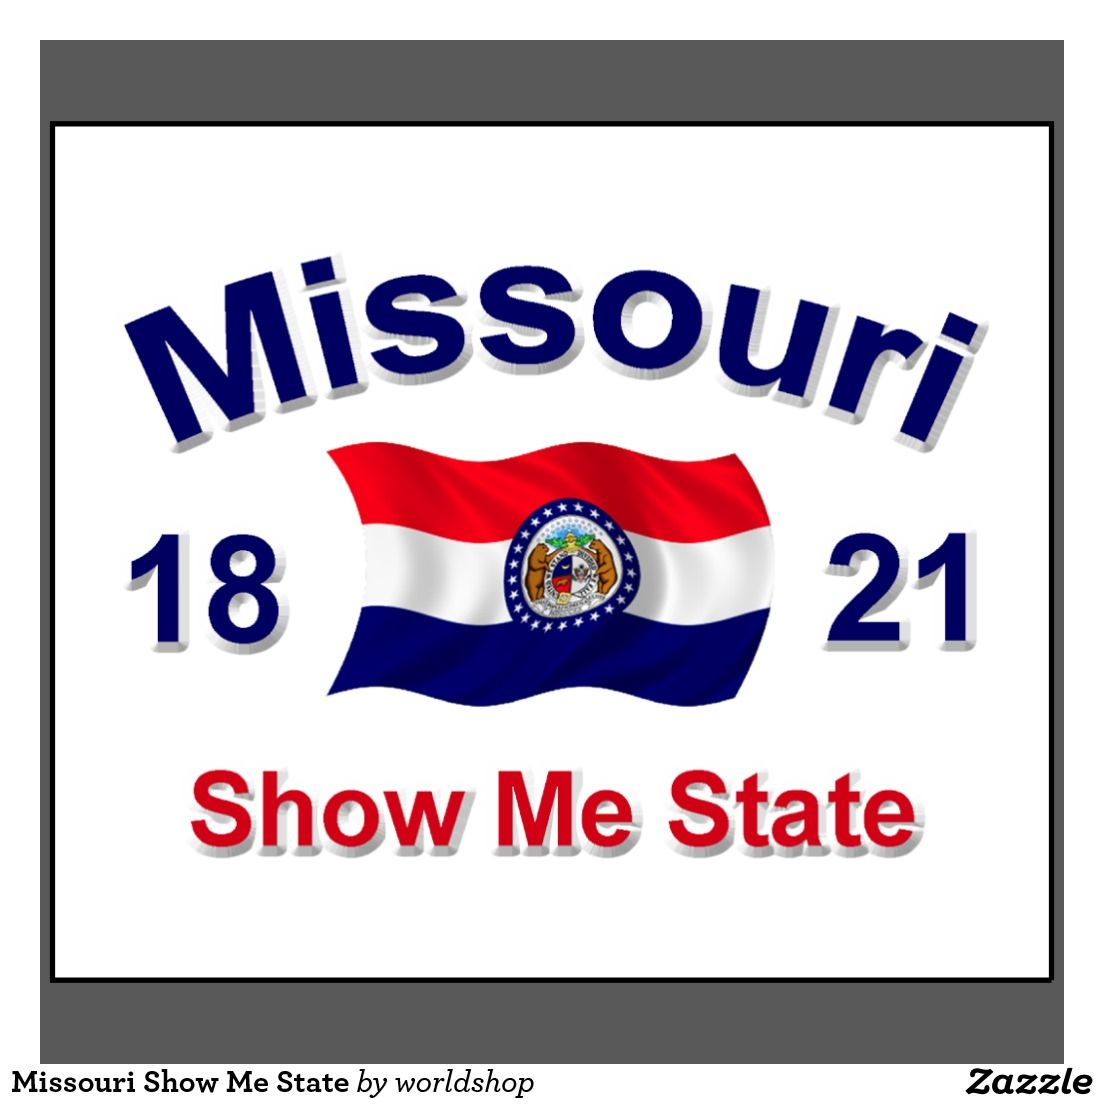 Have You Ever Seen A Car Pass With A Missouri License Plate And Reading The State Motto The